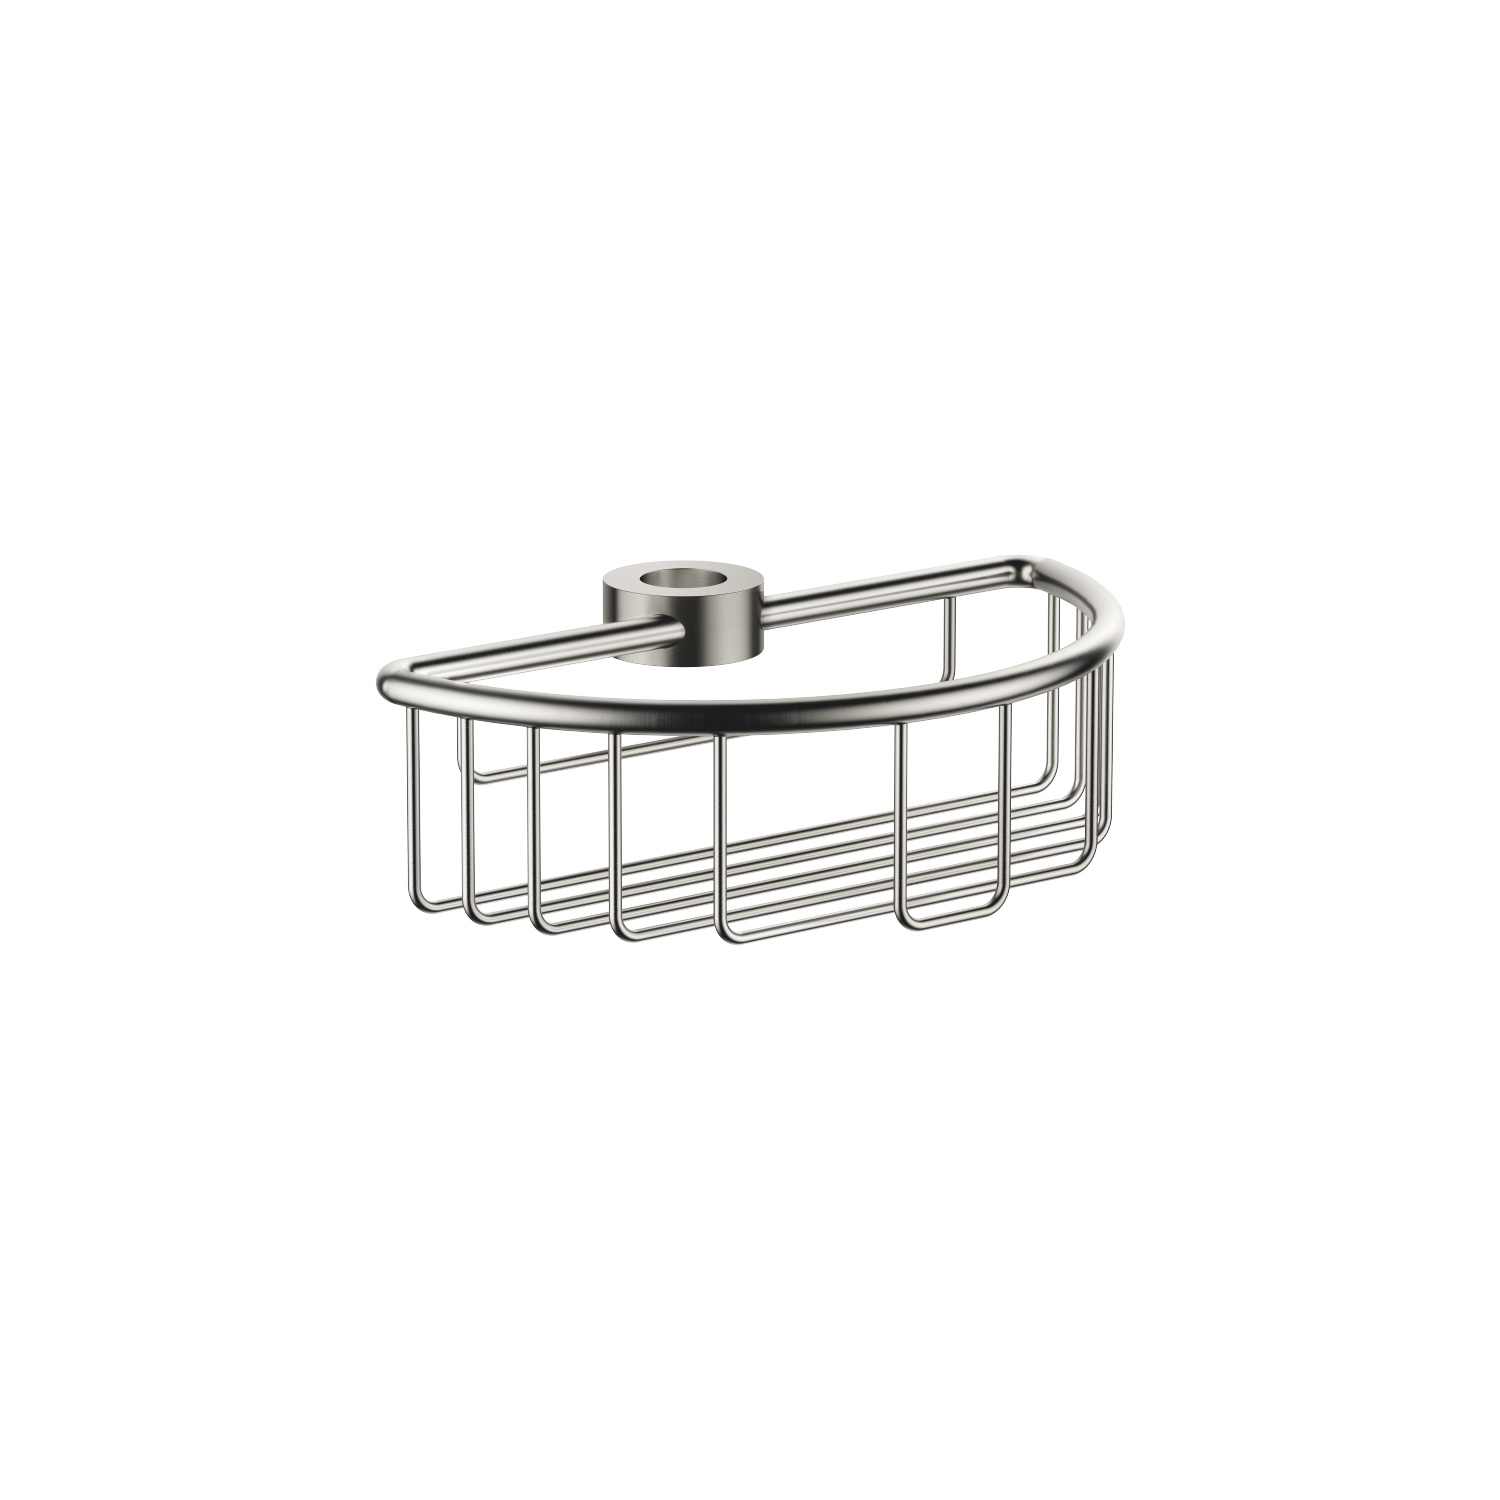 Shower basket for subsequent mounting on riser - platinum matt